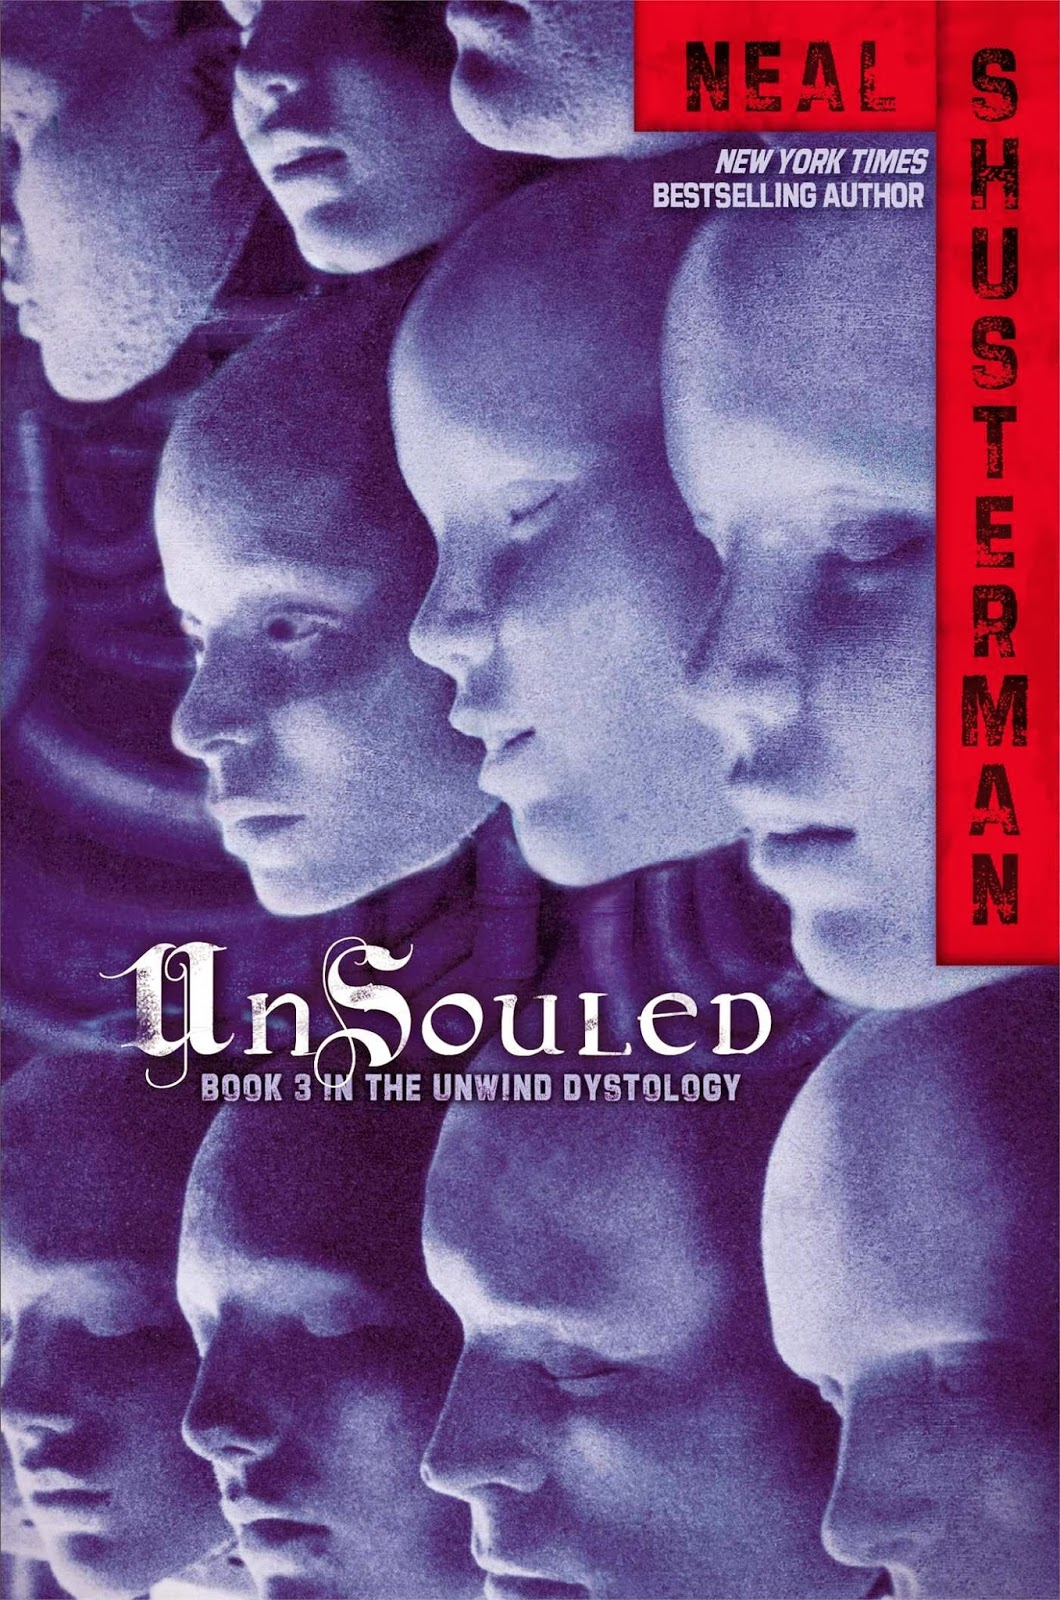 Book cover: Unsouled, book 3 in the Unwind dystology by Neal Shusterman